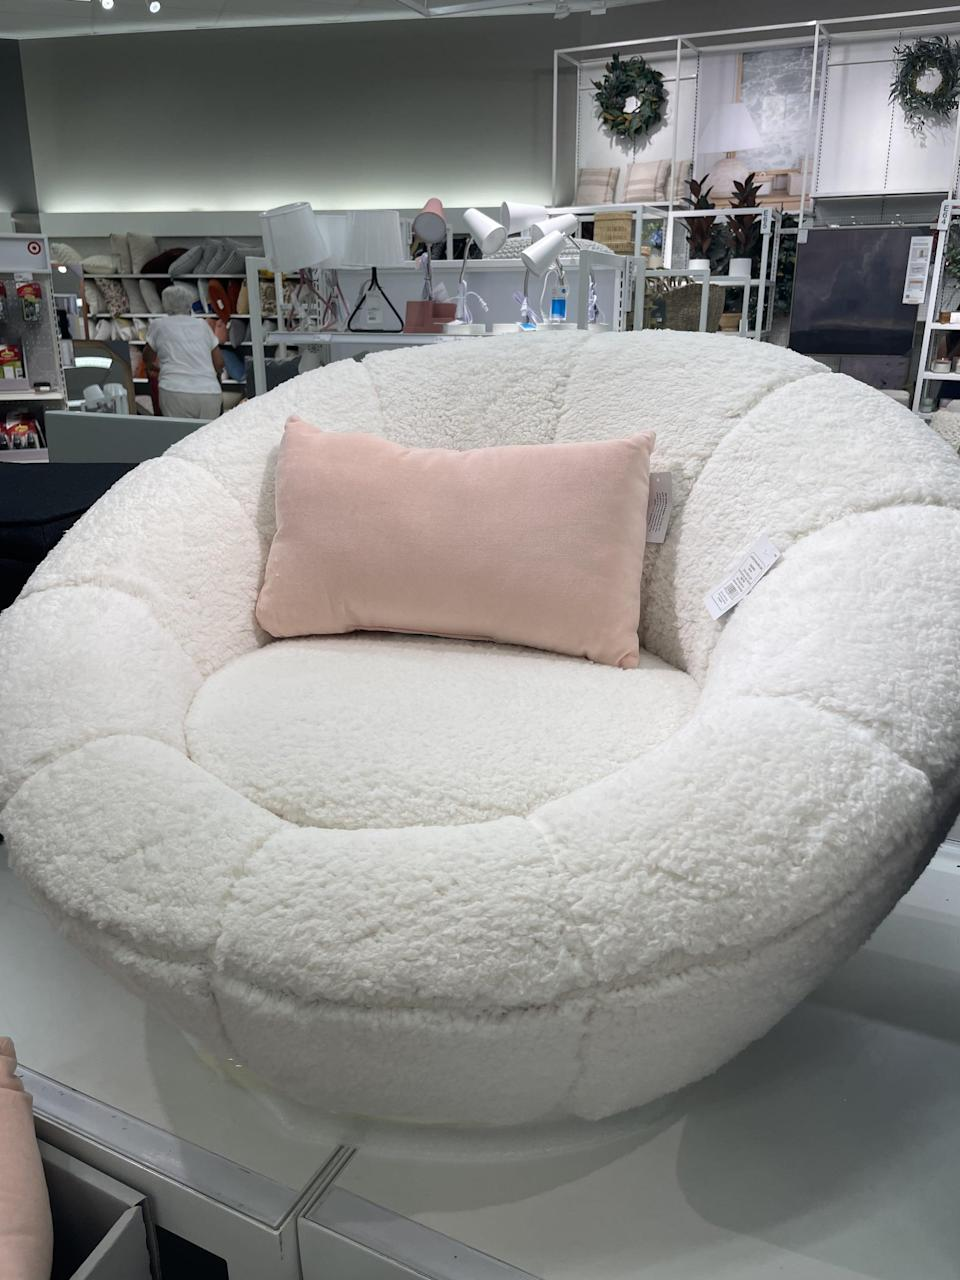 <p>I sat in this <span>Room Essentials Sherpa Swivel Tulip Chair</span> ($119) and can confirm it's incredibly comfortable. It's like sitting on a cloud. Plus the fact that it swivels all the way around is so genius.</p>